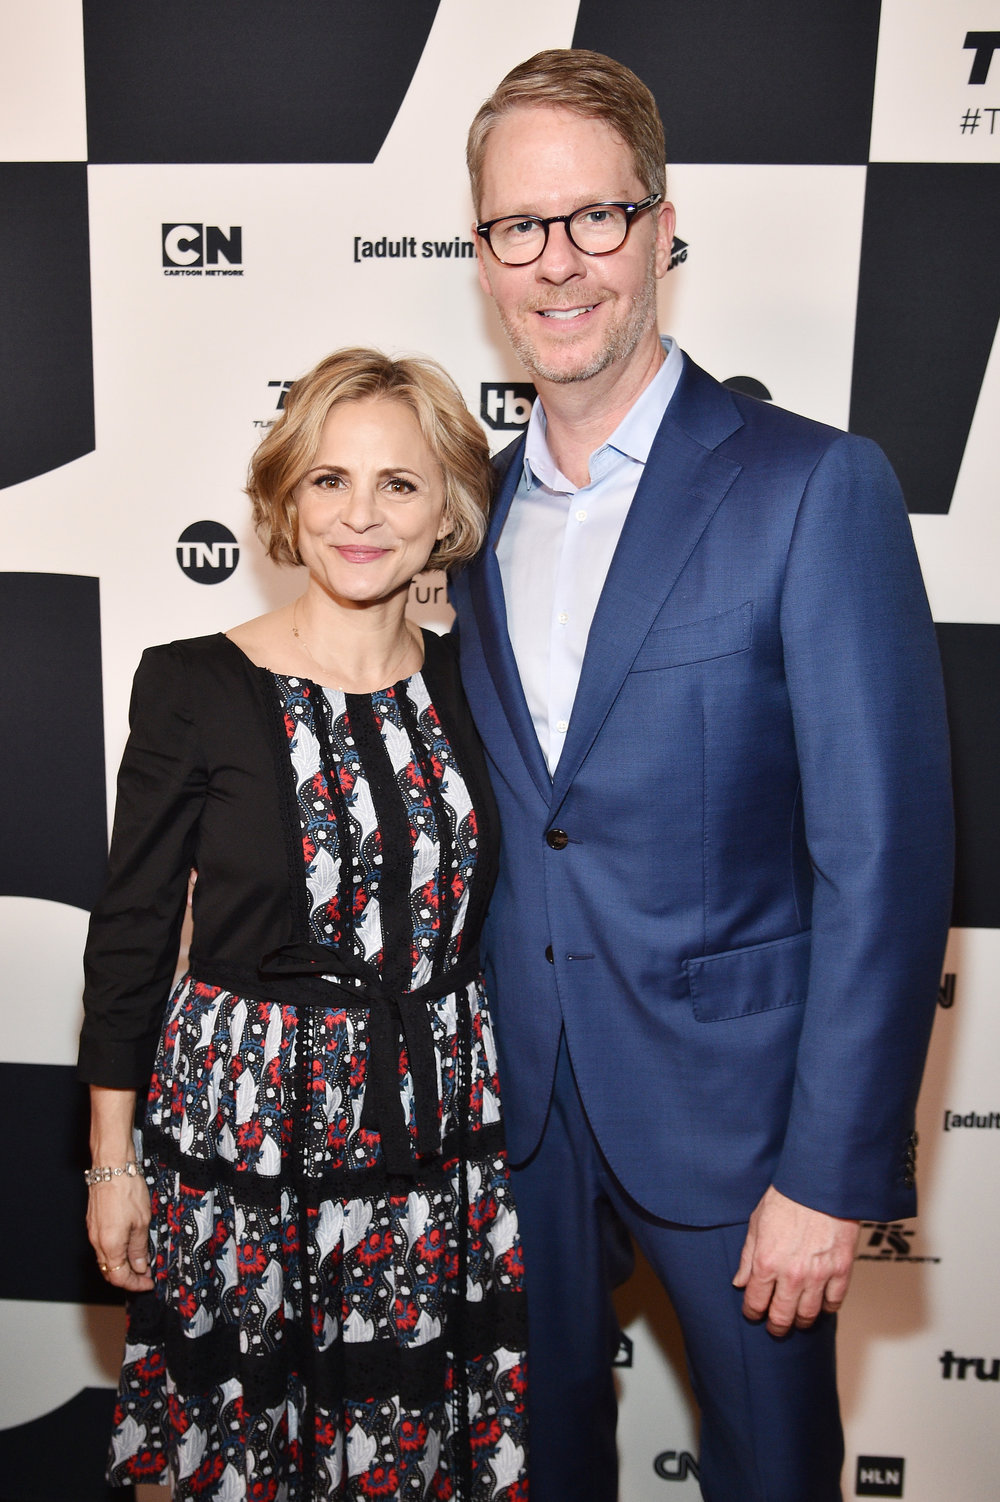 (Left to Right)  Amy Sedaris  of truTV's  At Home with Amy Sedaris  and  Chris Linn , President of truTV at the  Turner Upfront 2017  green room at Lugo Cucina Italiana on May 17, 2017 in New York City. (Photo by Kevin Mazur/Getty Images)